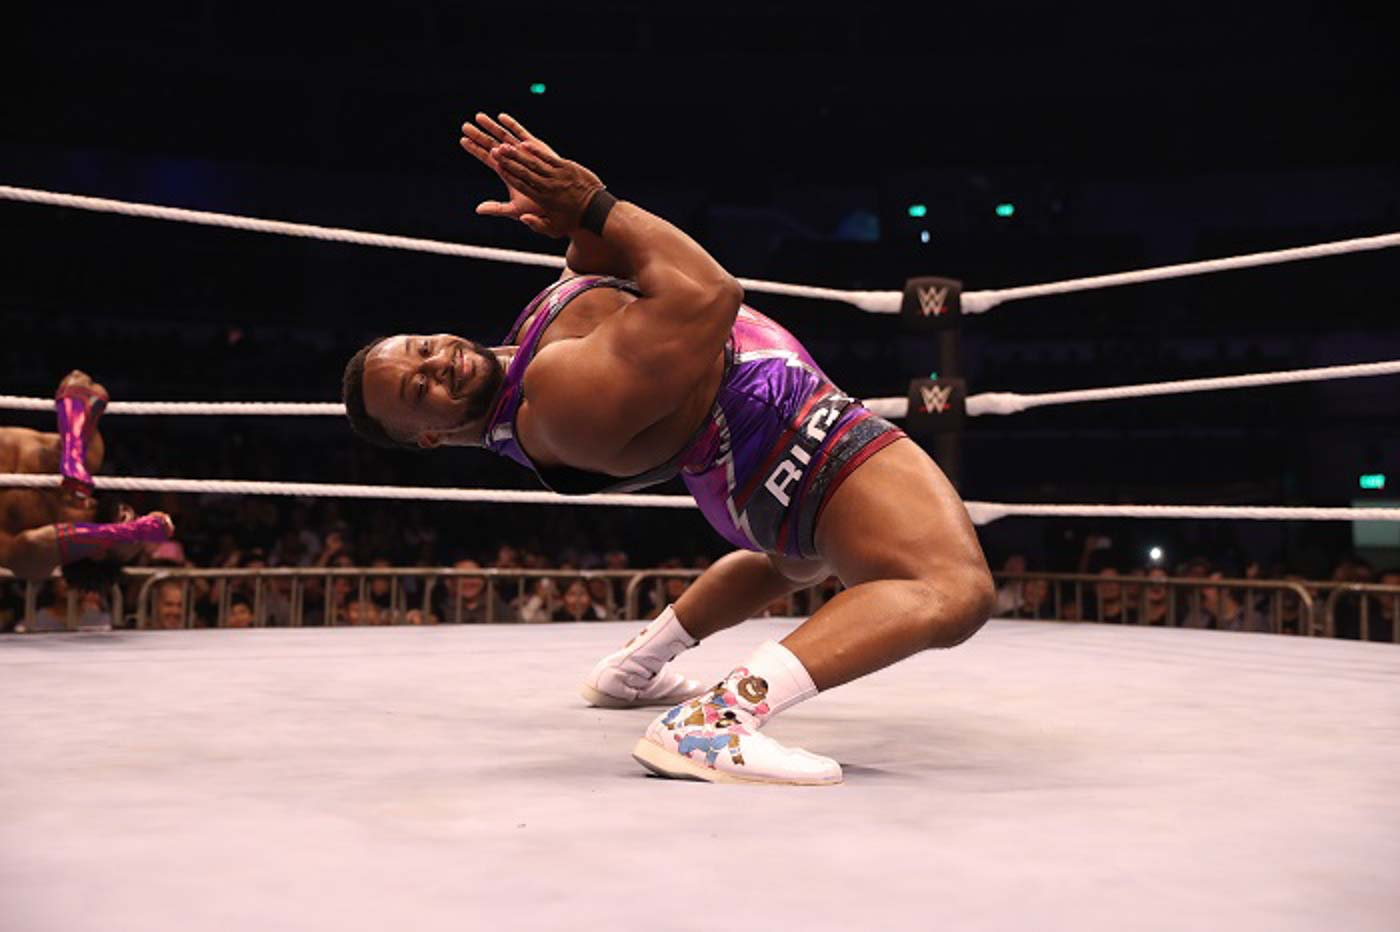 UNDERESTIMATED. Big E is hit with a surprise as he loses his title. Photo from release